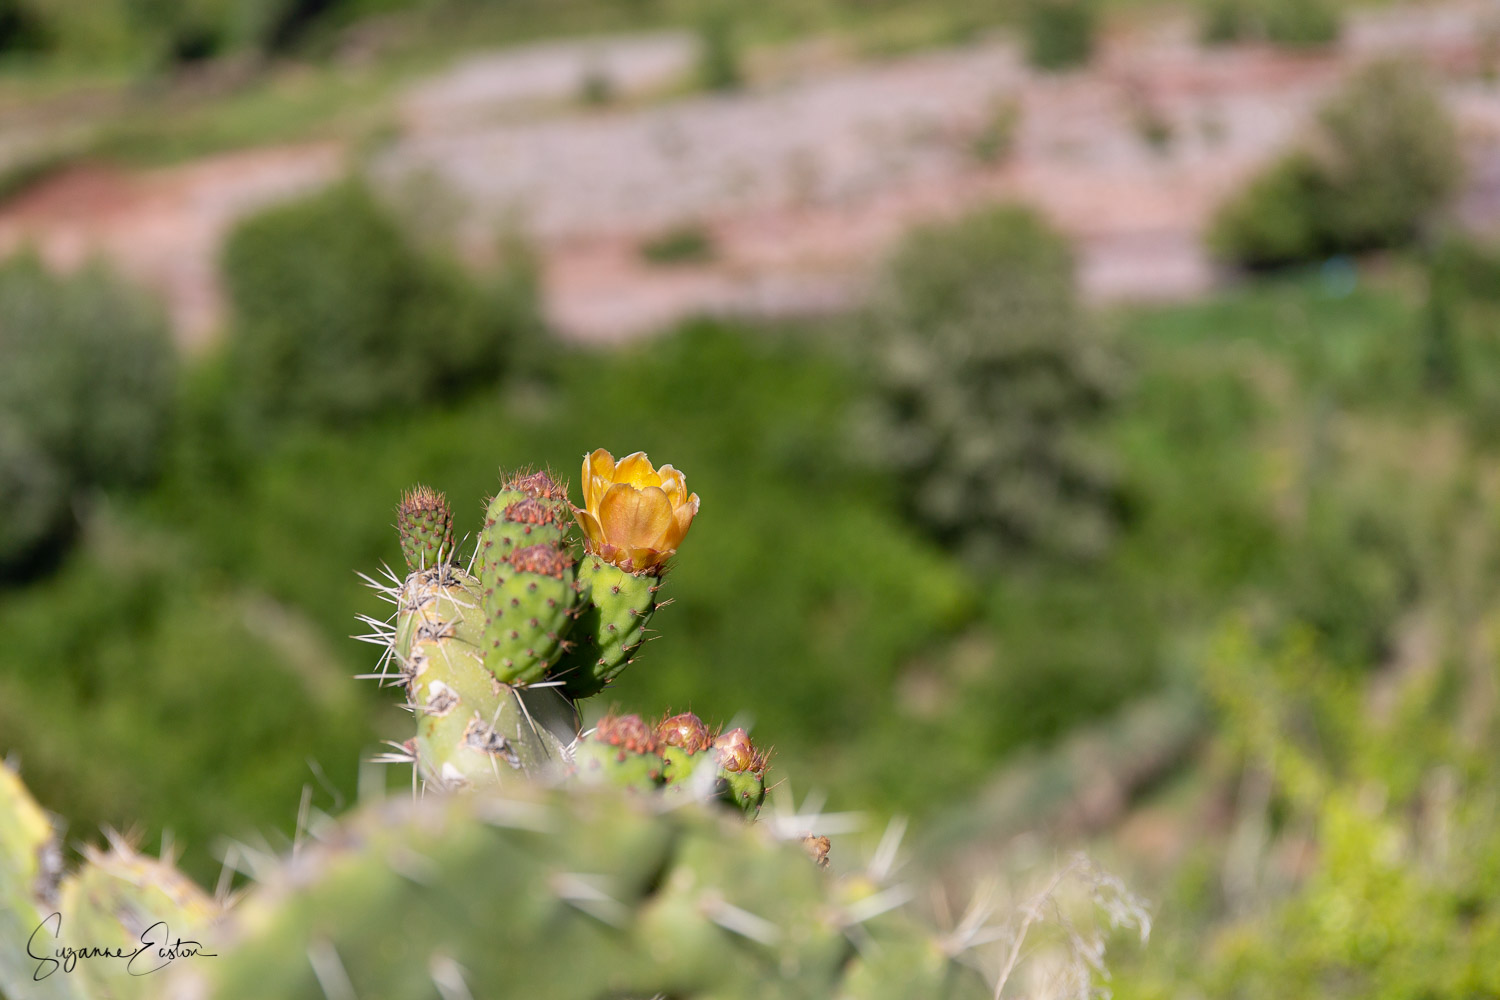 The prickly pear flower is harvested and dried before being used as pot pourri in Morocco